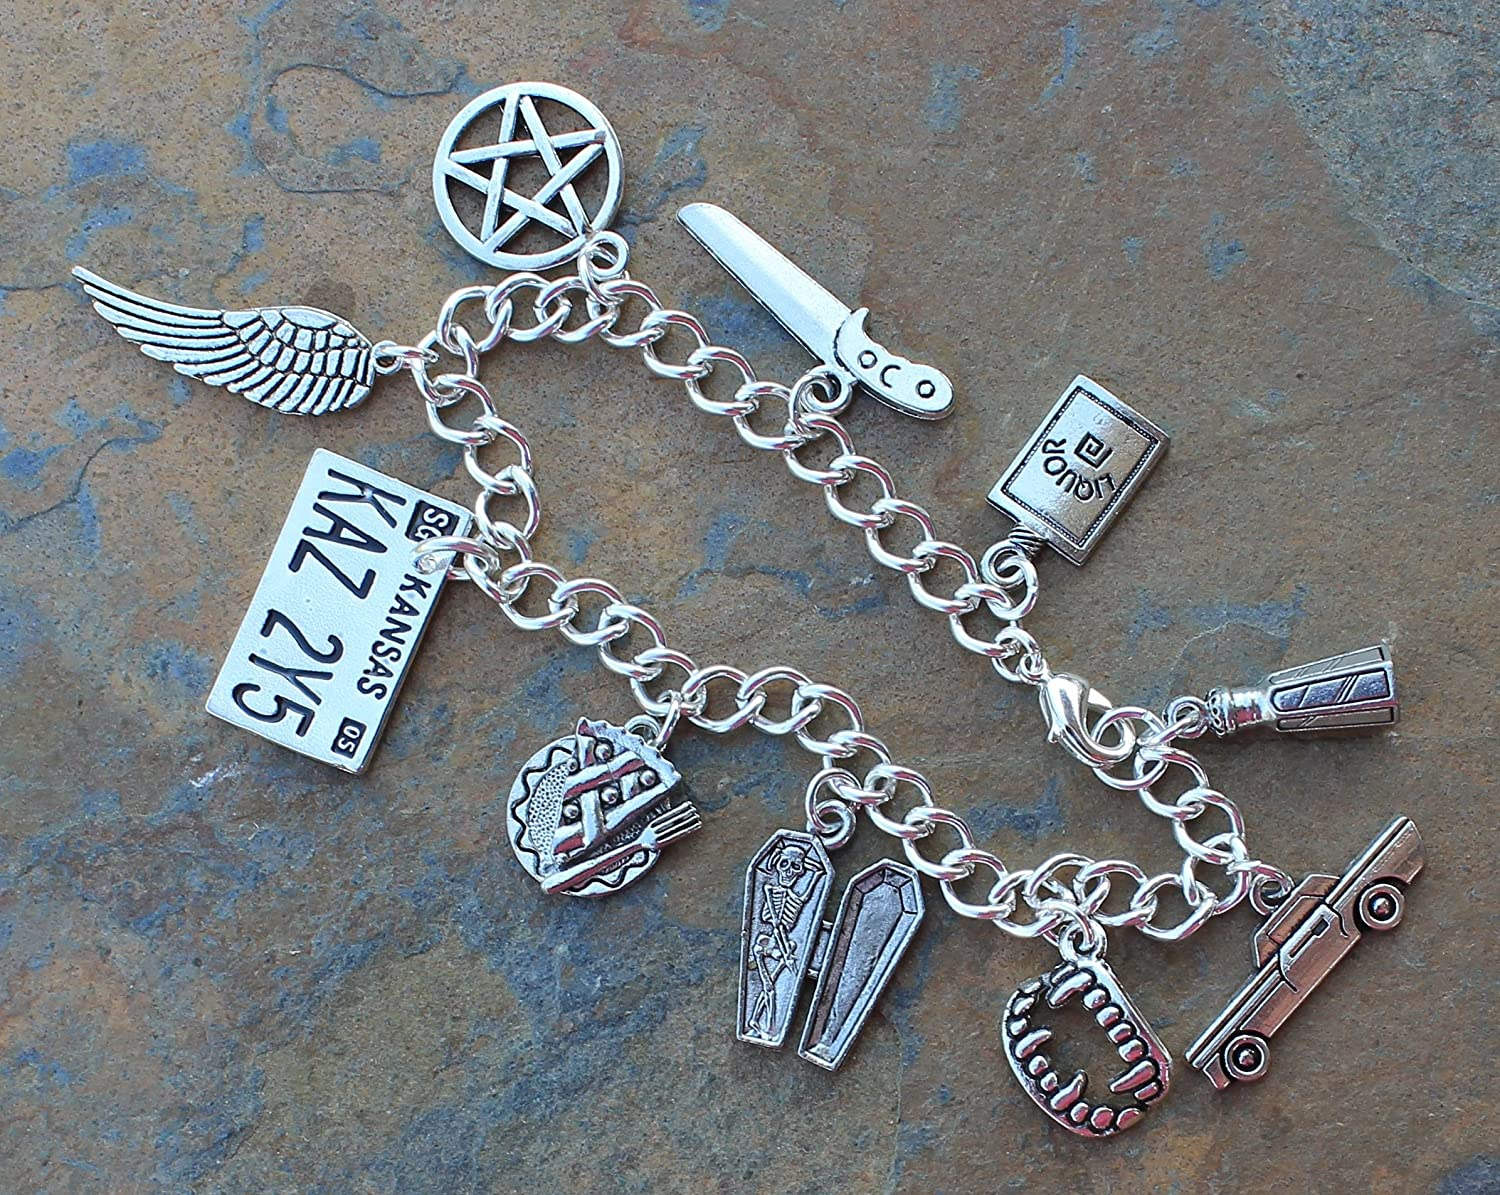 Night Owl Jewelry Supernatural Charm Bracelet Pewter Charms Silver Plated Chain Sizes XS to XL Demon Hunters Handmade